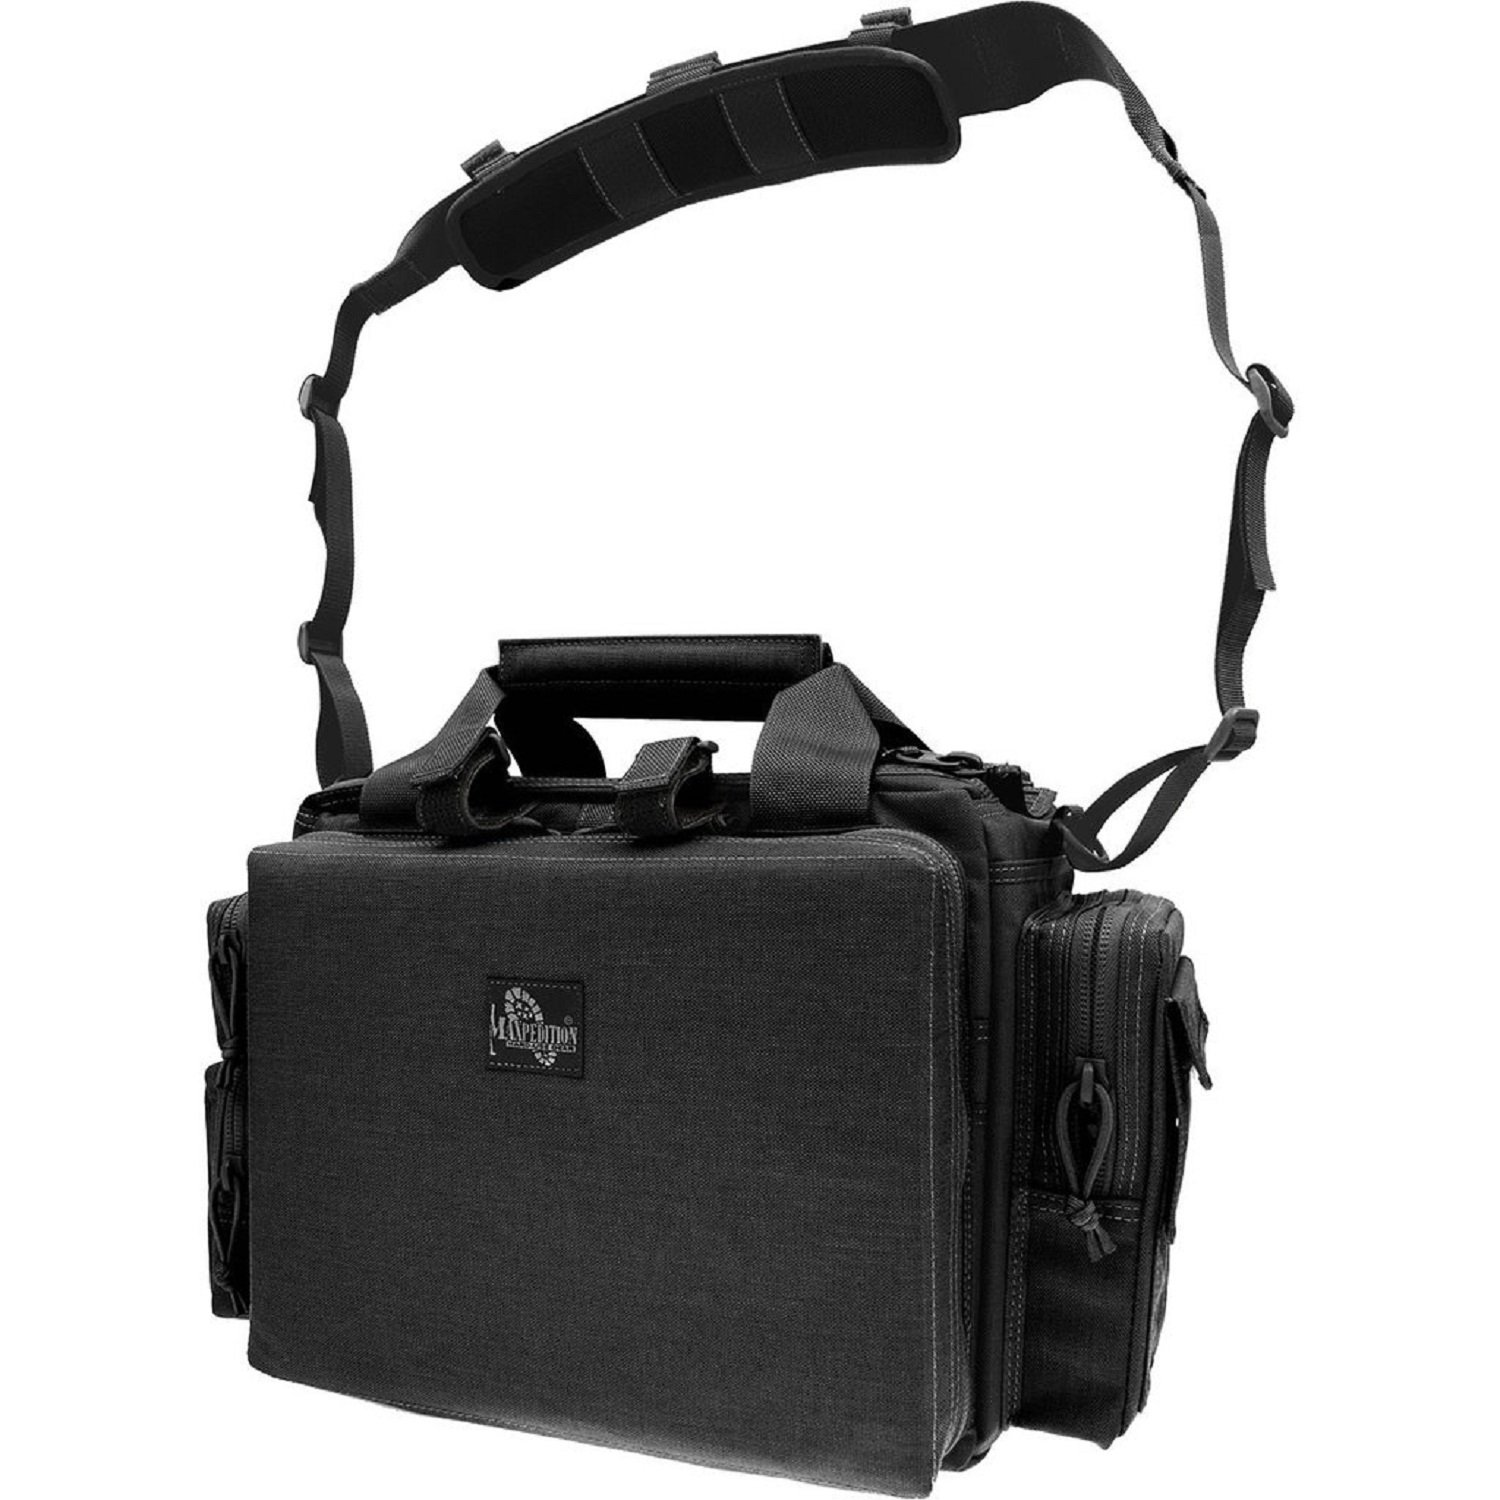 Maxpedition Mpb Multi-Purpose Bag (Black)